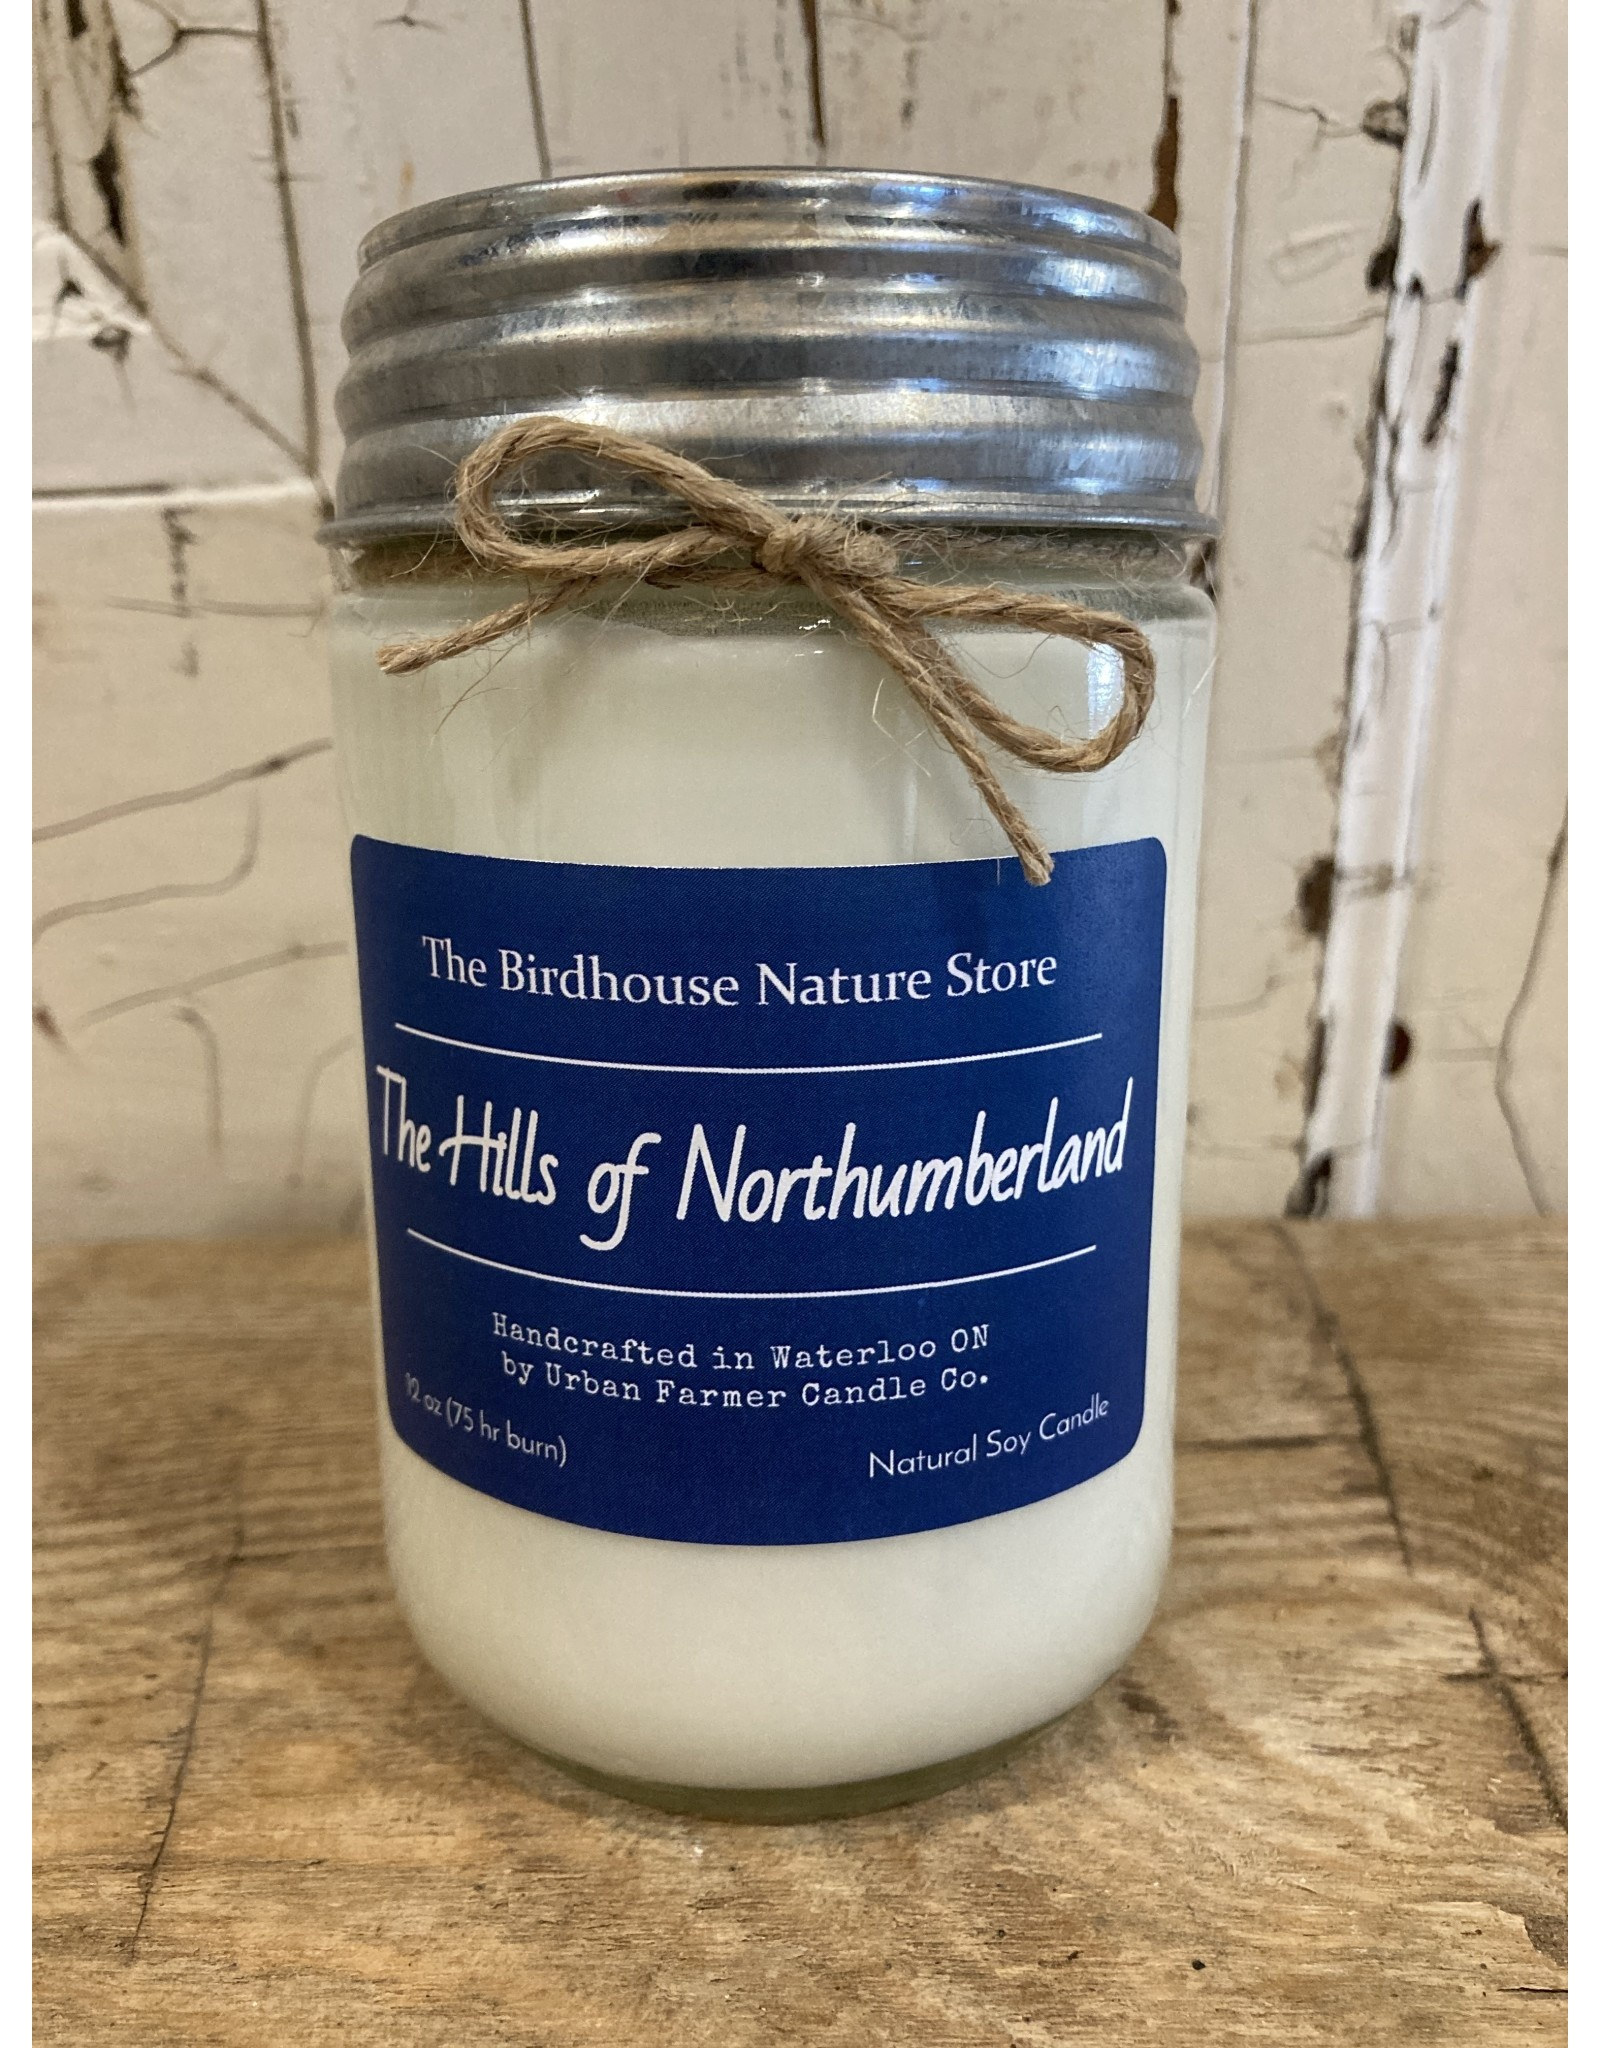 Urban Farmer Candle Co UFCCNH The Hills of Northumberland Natural Soy Candle, 12 oz